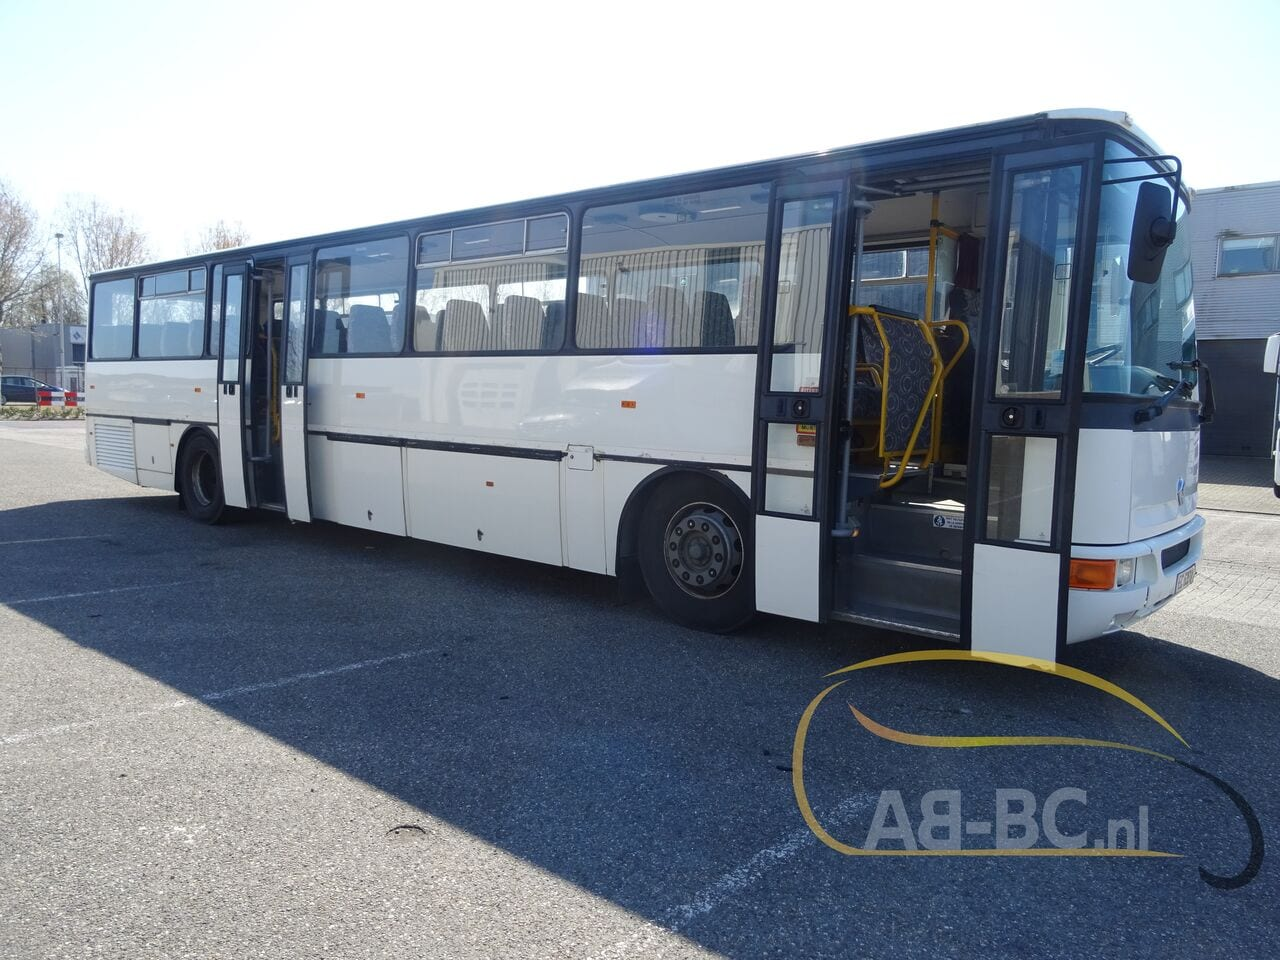 interurban-busIVECO-Irisbus-Recreo-59-Seats---1619430611925044340_big_2bda703a3d40b180b024894036bee032--21042612454255740900